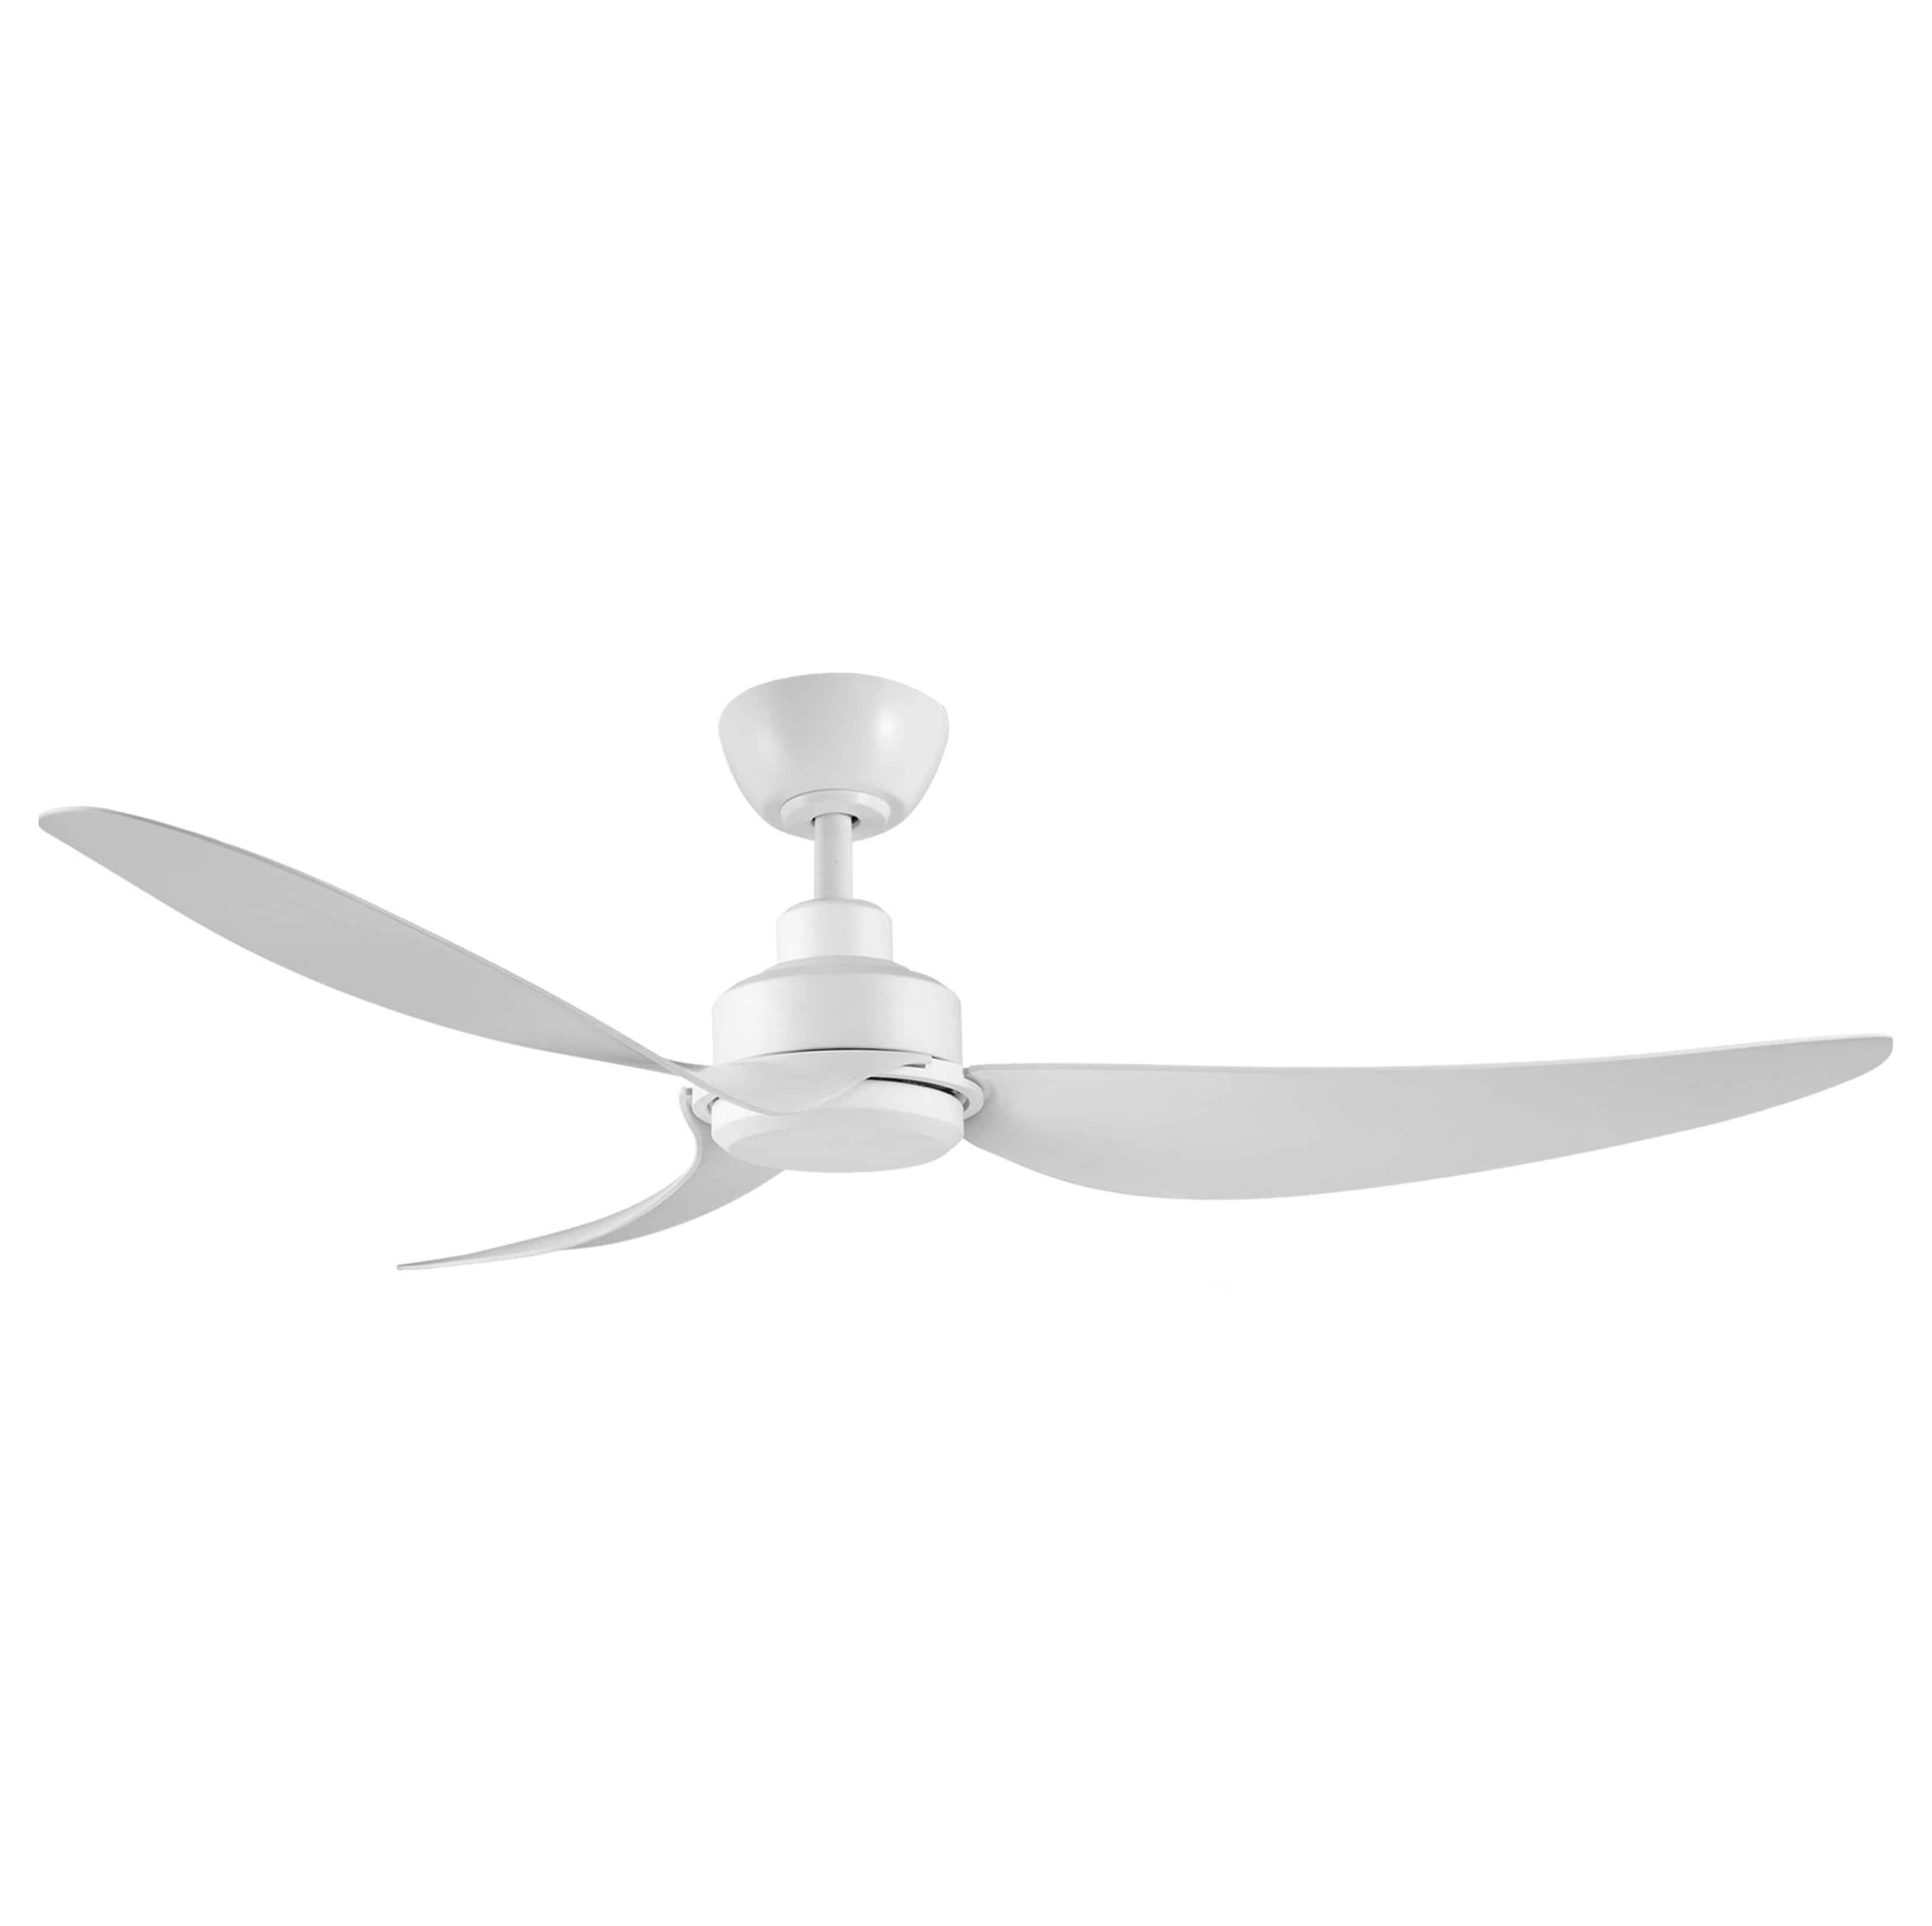 Indoor Fans Trinity Ceiling Fan - White